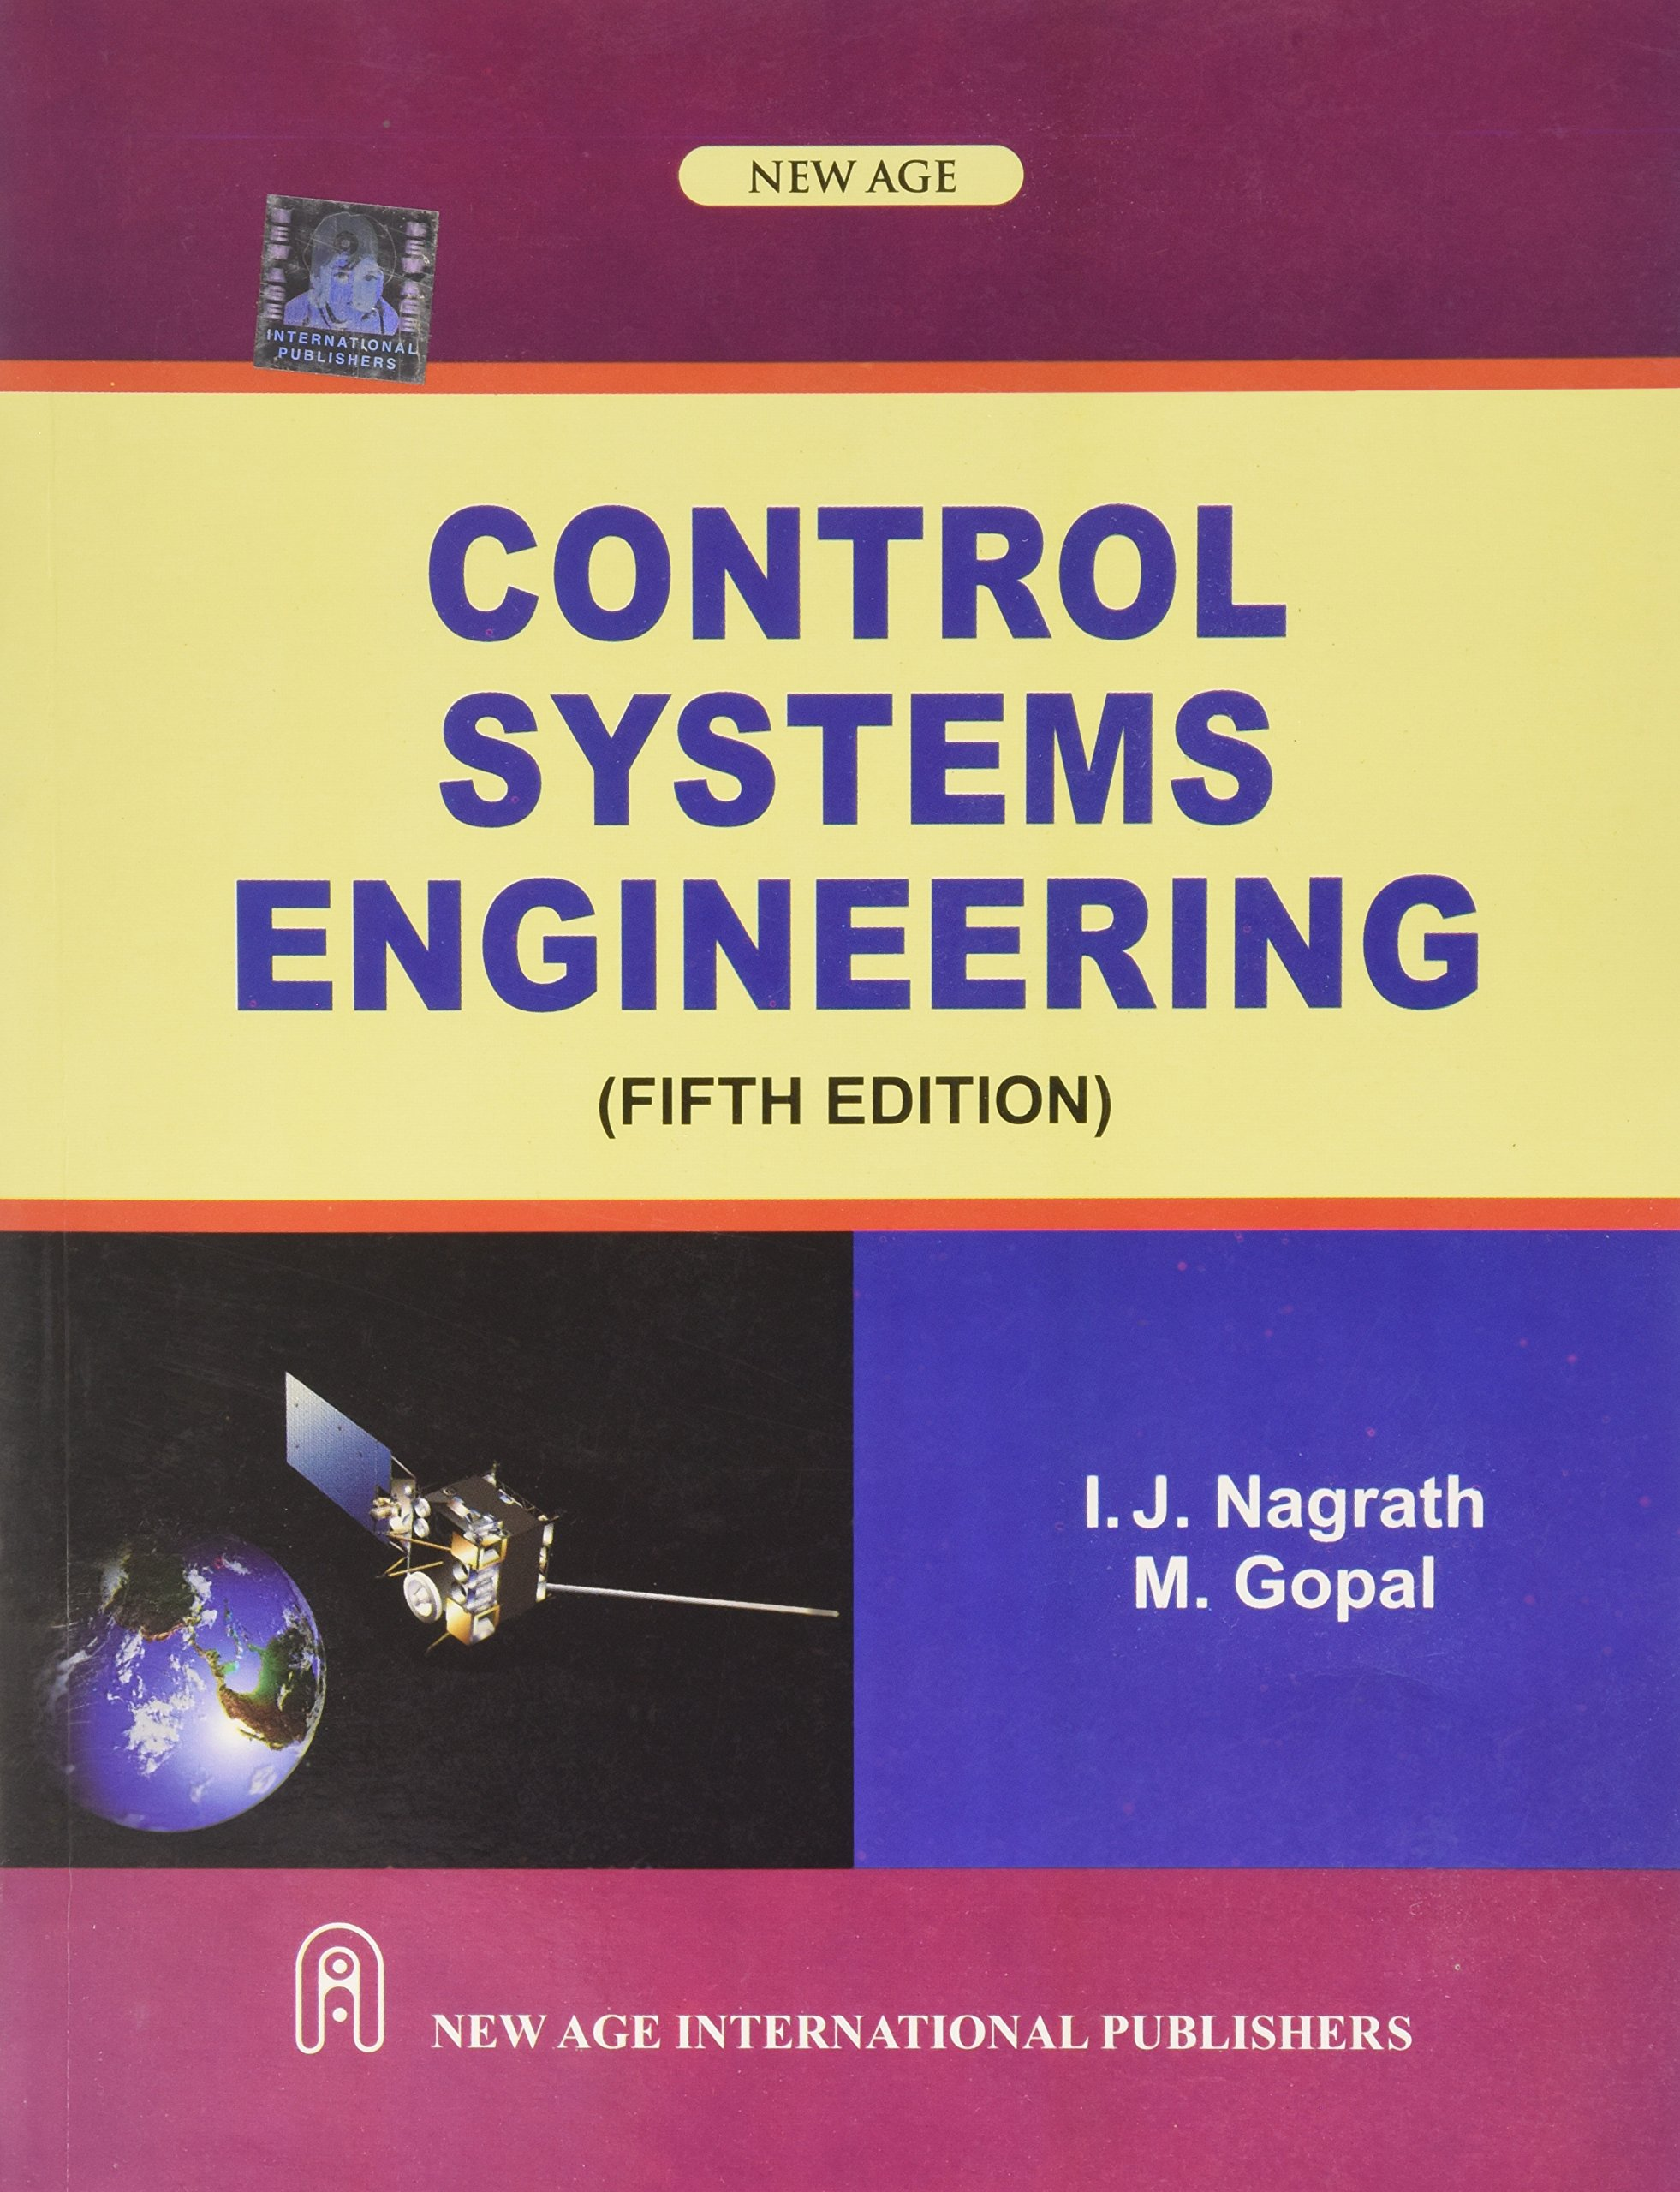 Control systems engineering. By i. J. Nagrath.